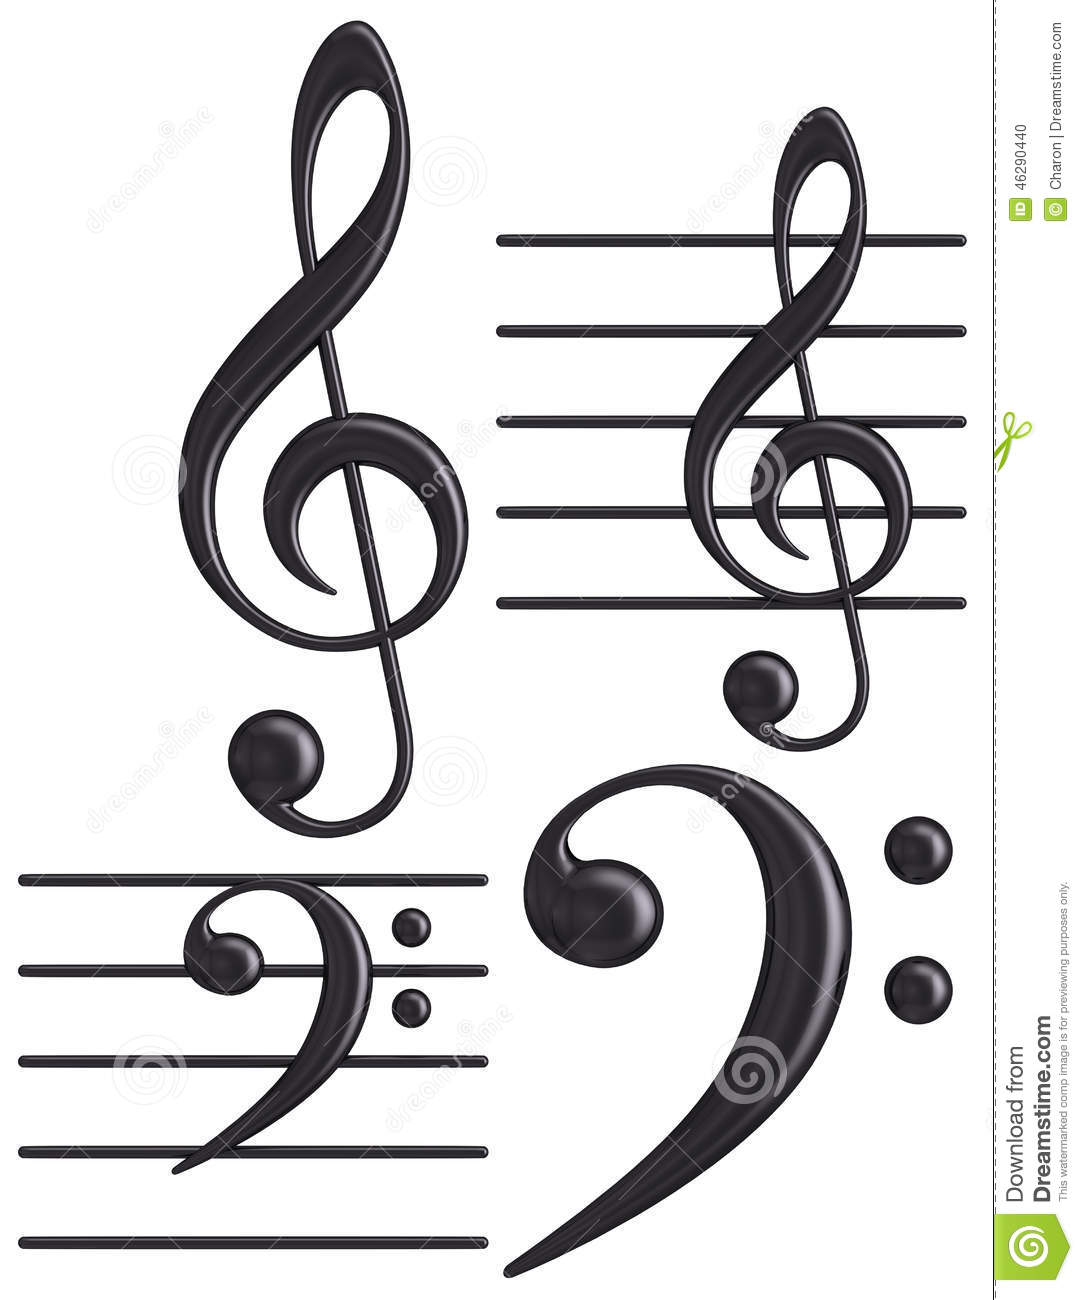 3d black g and f clef musical symbols stock photo illustration 3d black g and f clef musical symbols biocorpaavc Images